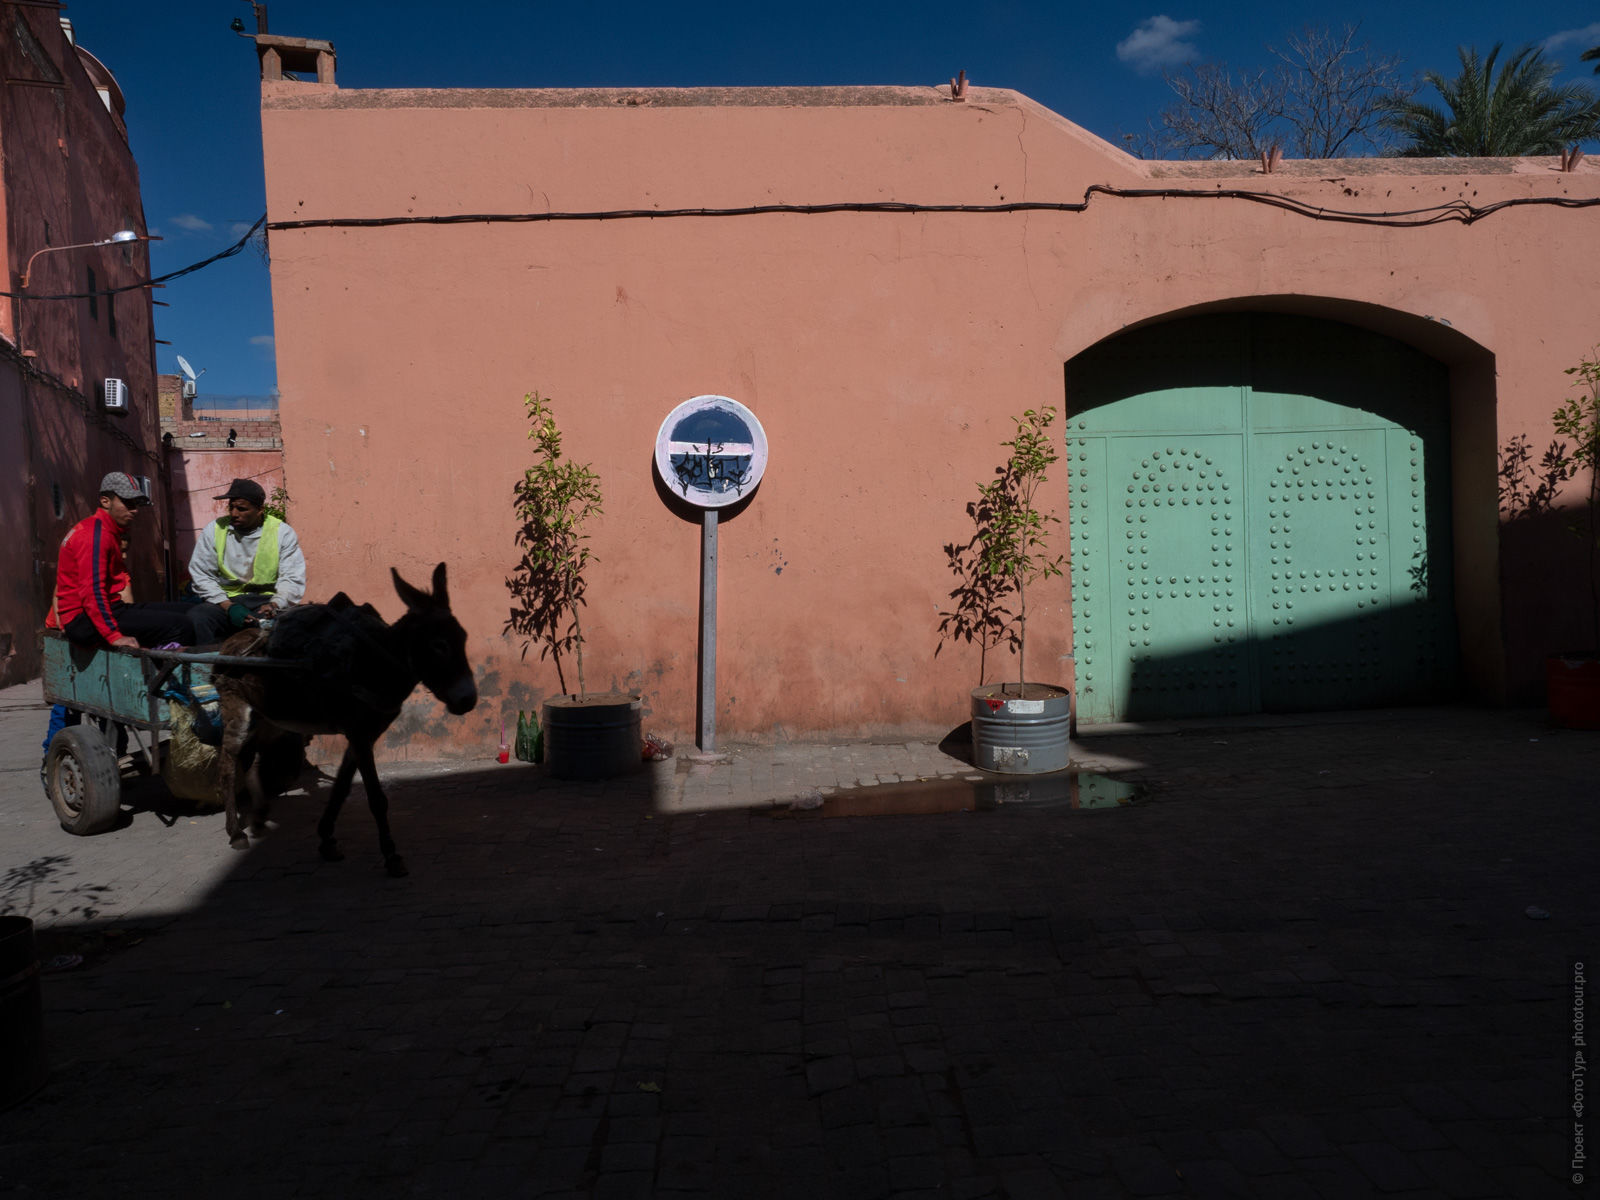 The streets of the medina of Marrakech, Morocco, photo tour of Morocco, October 2018.